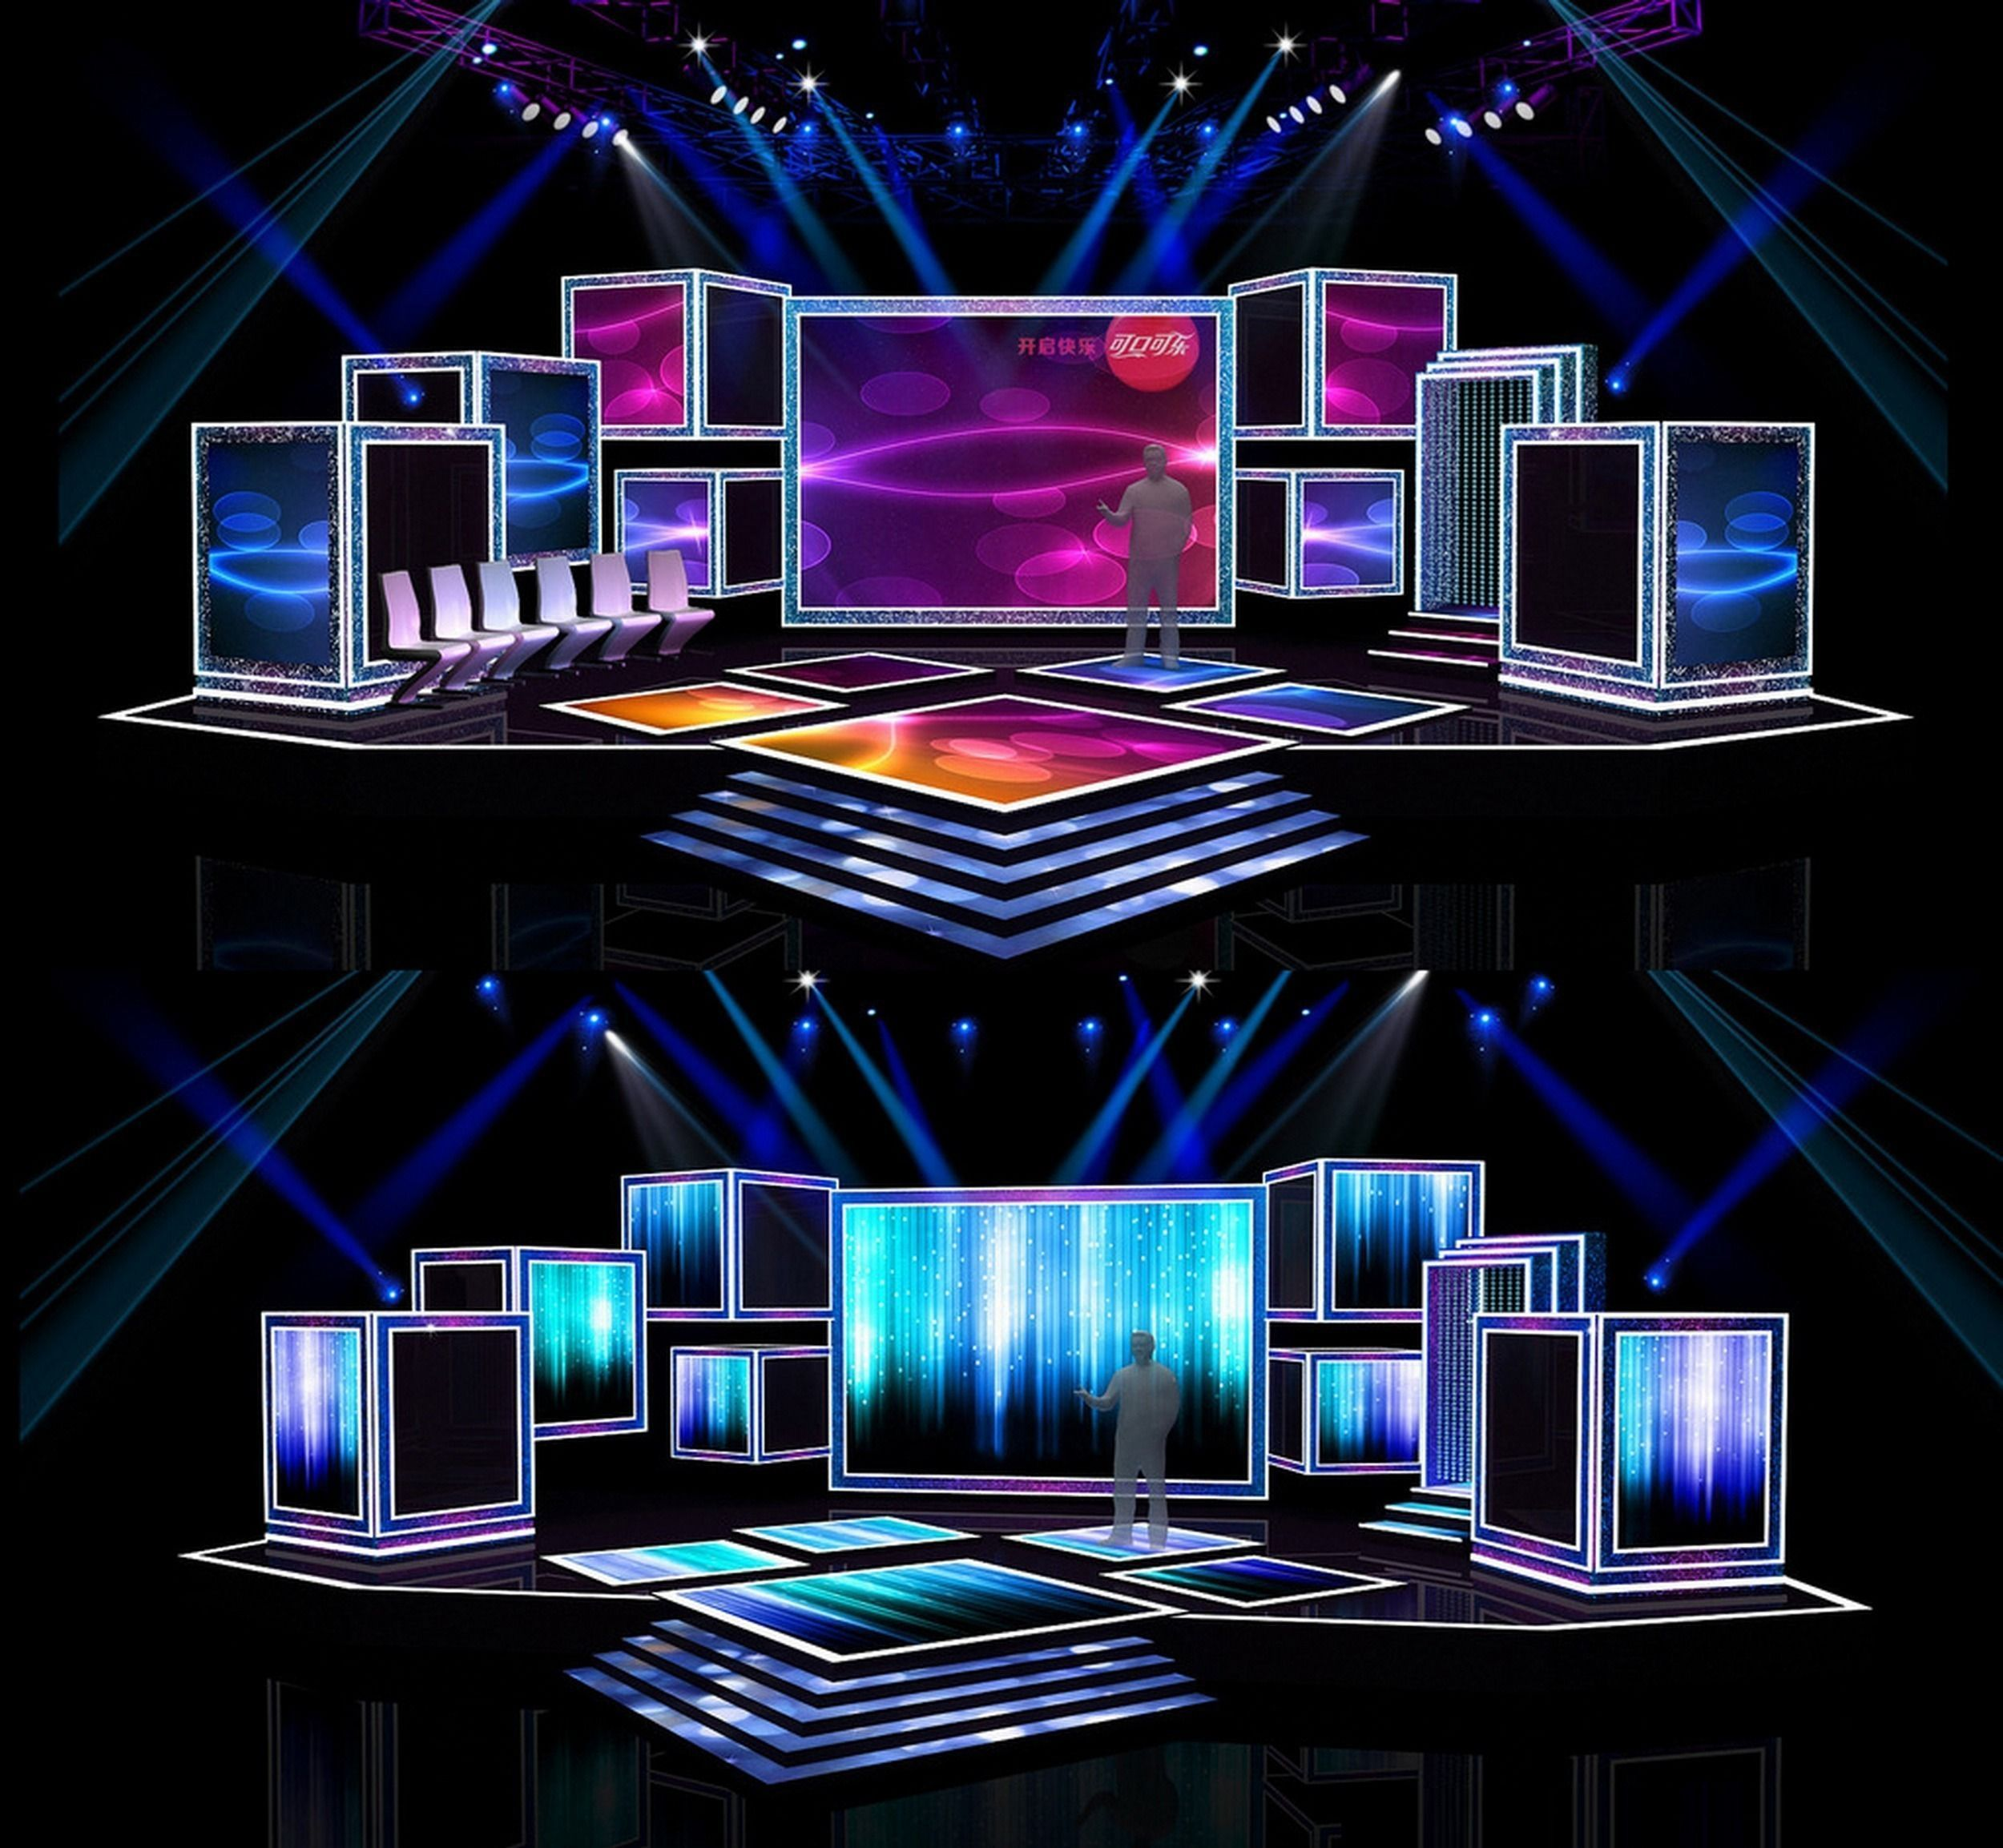 Concert stage design 7 3d model obj for Decor 3d model